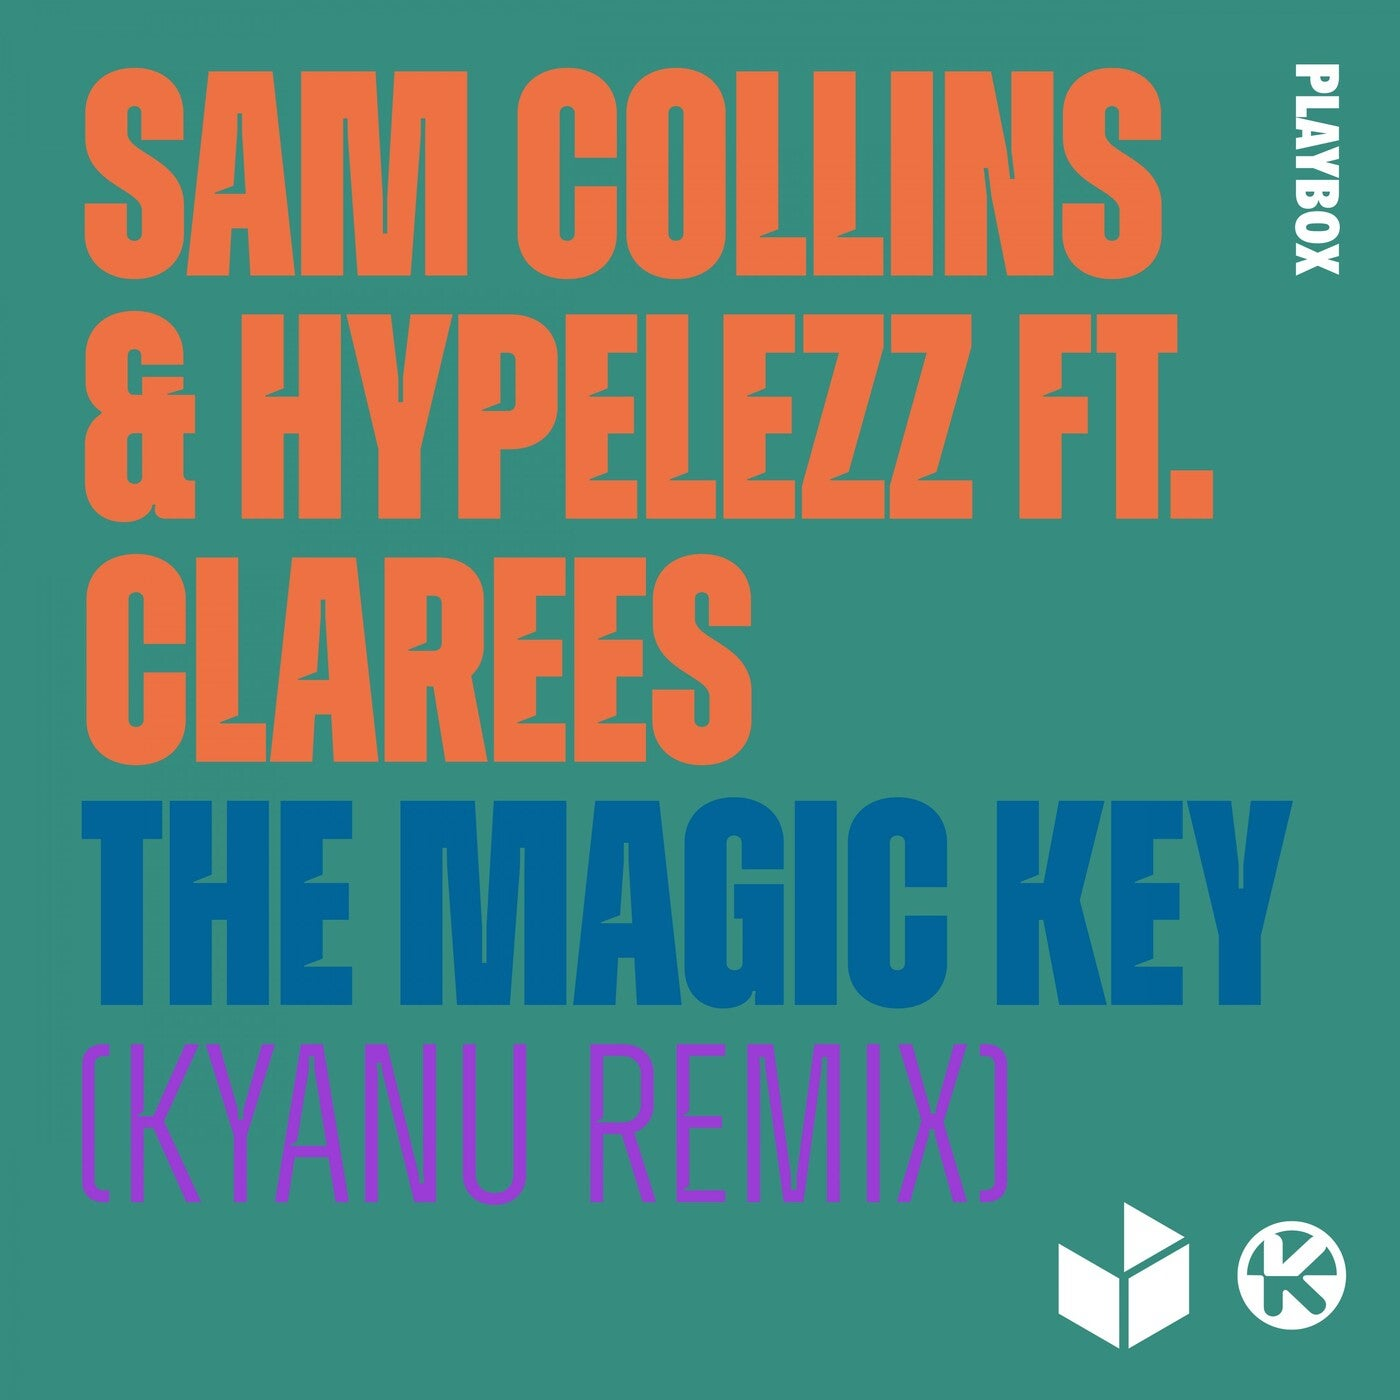 The Magic Key feat. Clarees